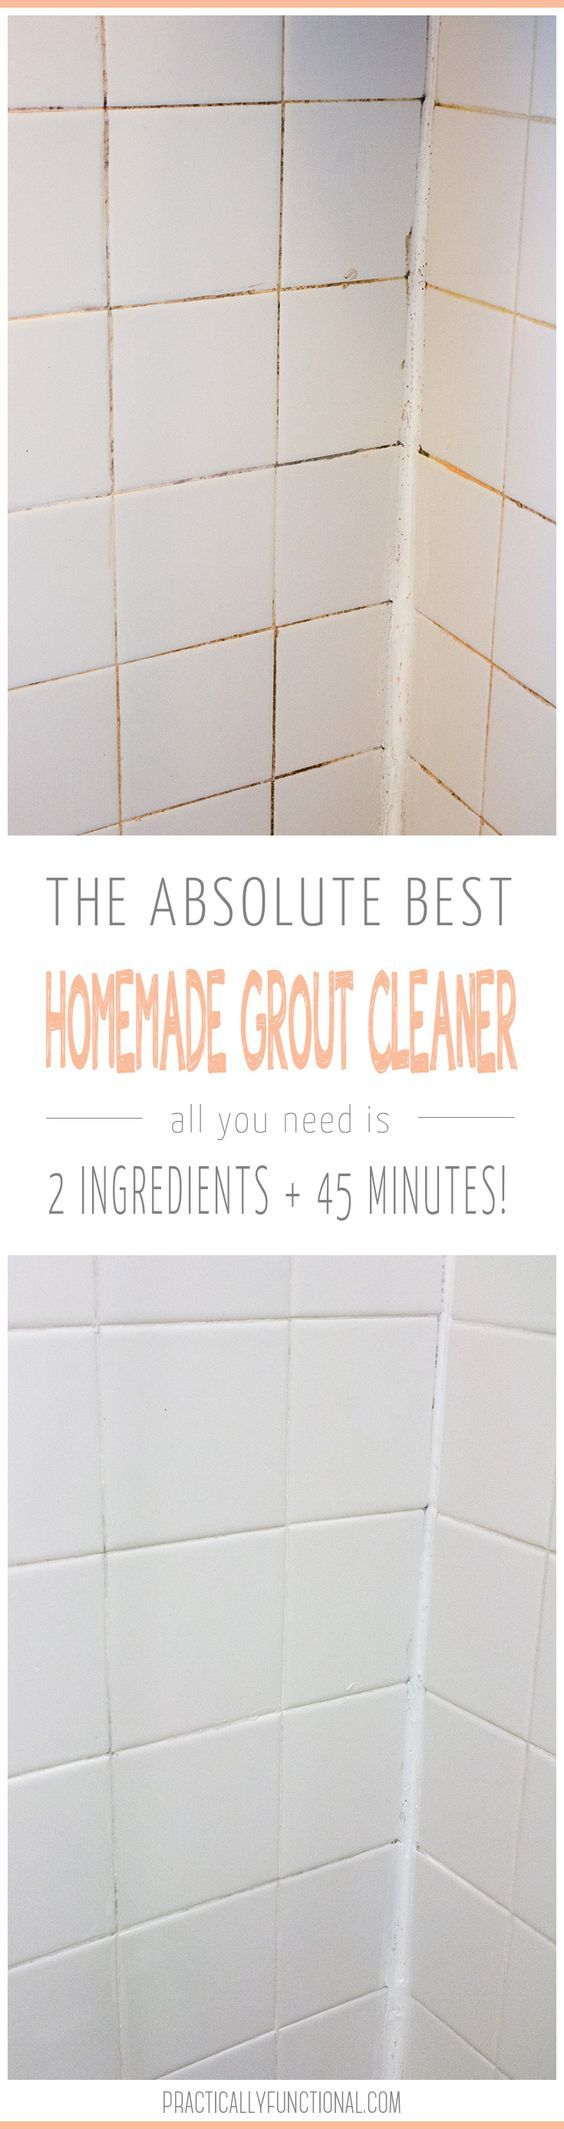 how to clean grout with a homemade grout cleaner grout cleaner rh pinterest com